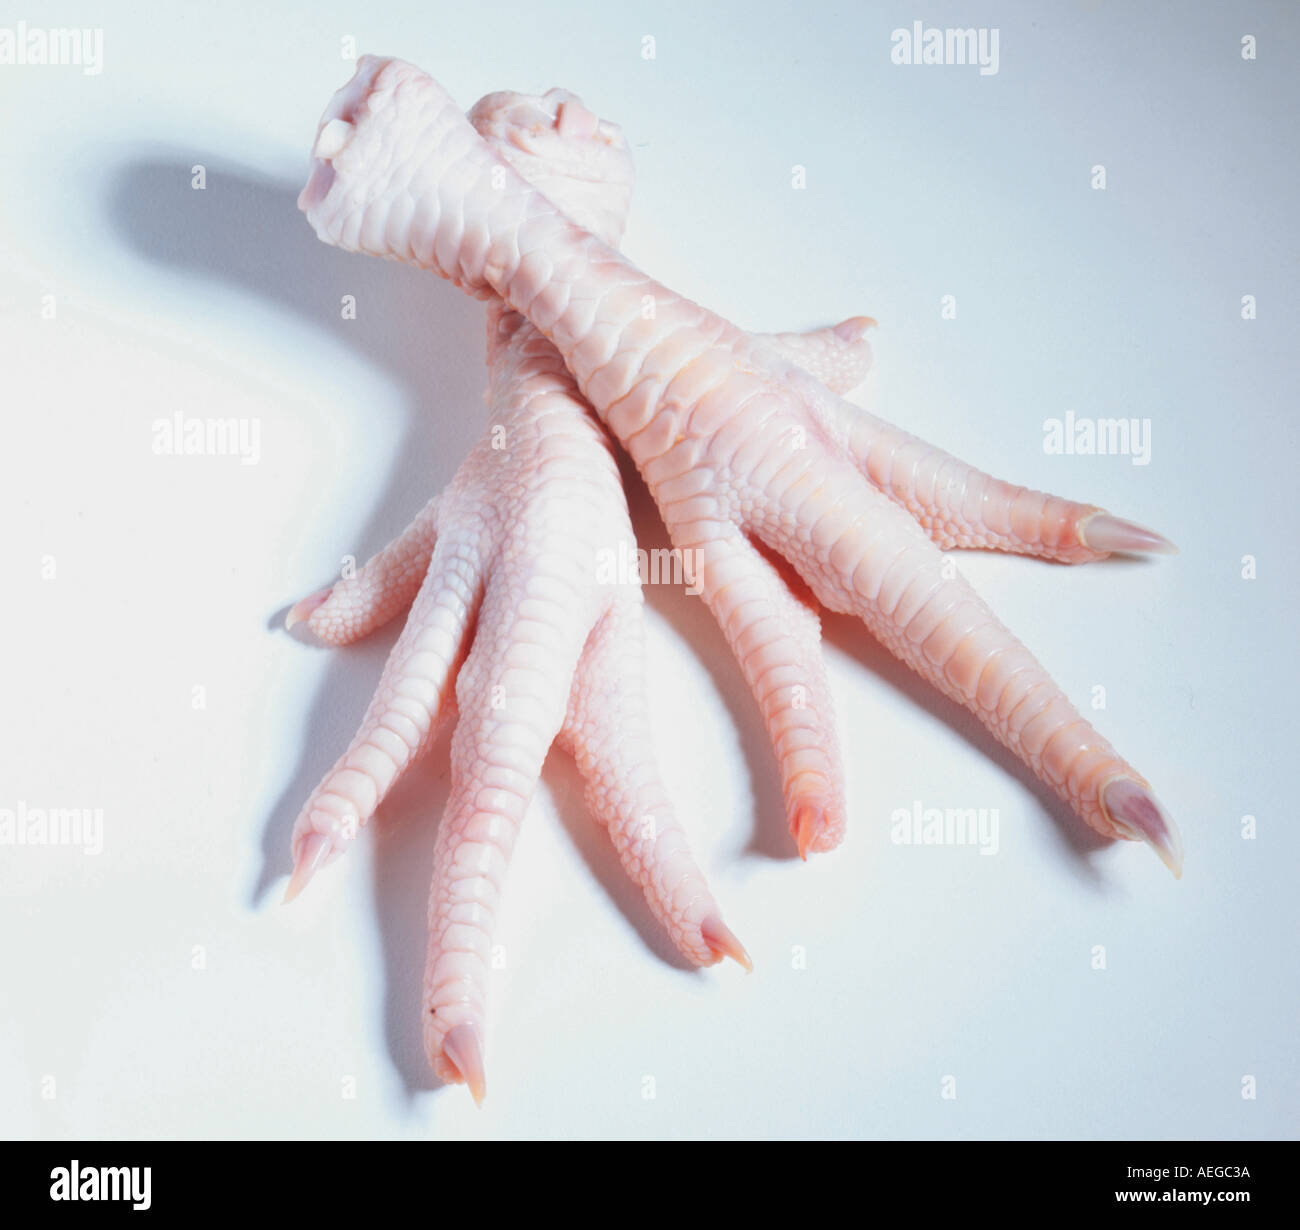 Food feet foot toes claw claws talon talons gross anatomy chicken chicken s nail stew paw paws wrinkled pale food meat - Stock Image